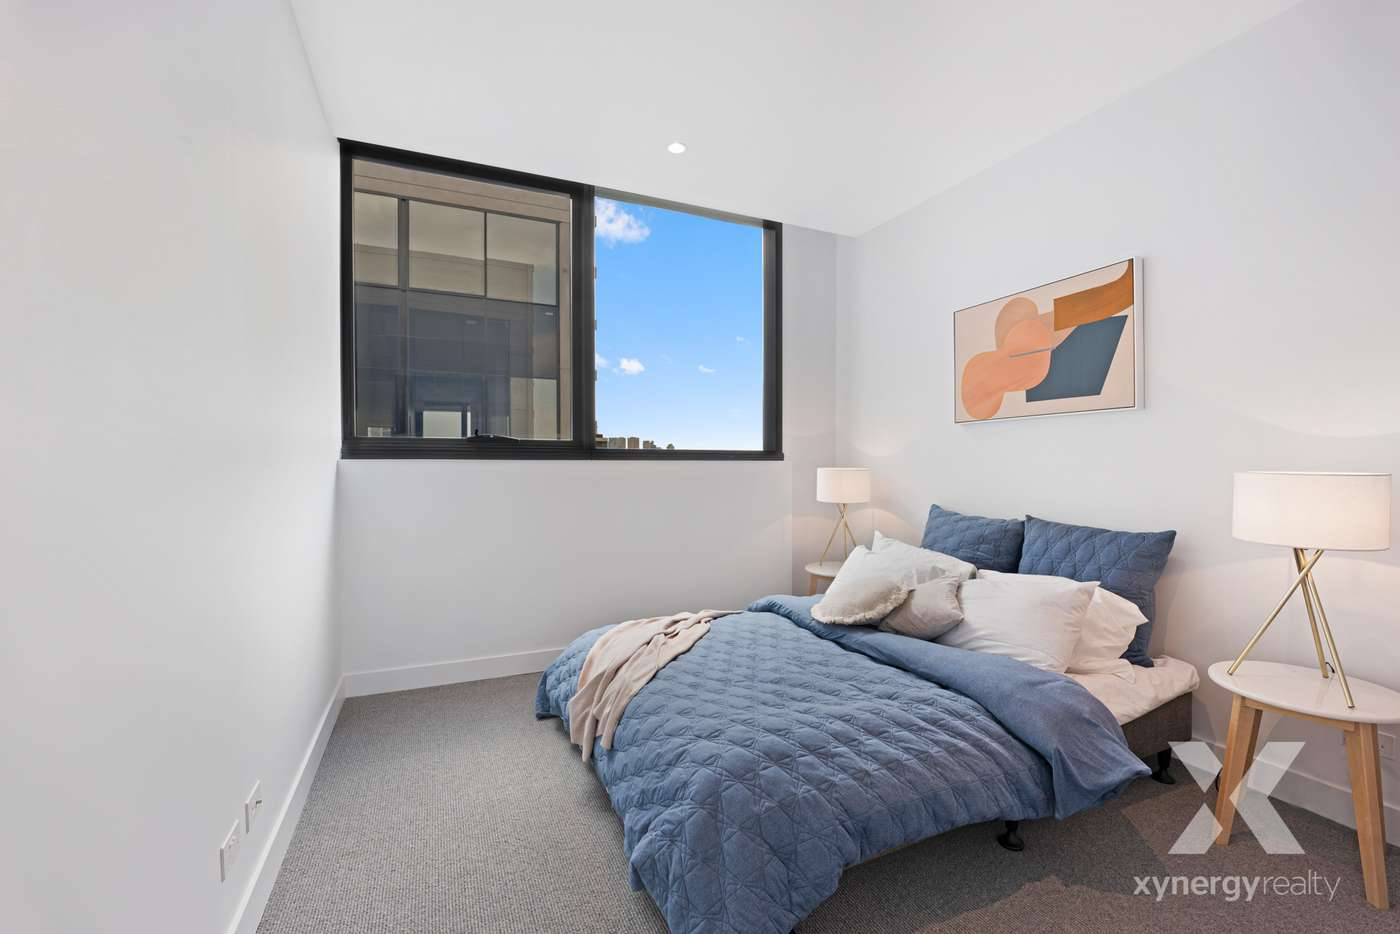 Sixth view of Homely apartment listing, 1301/649 Chapel Street, South Yarra VIC 3141